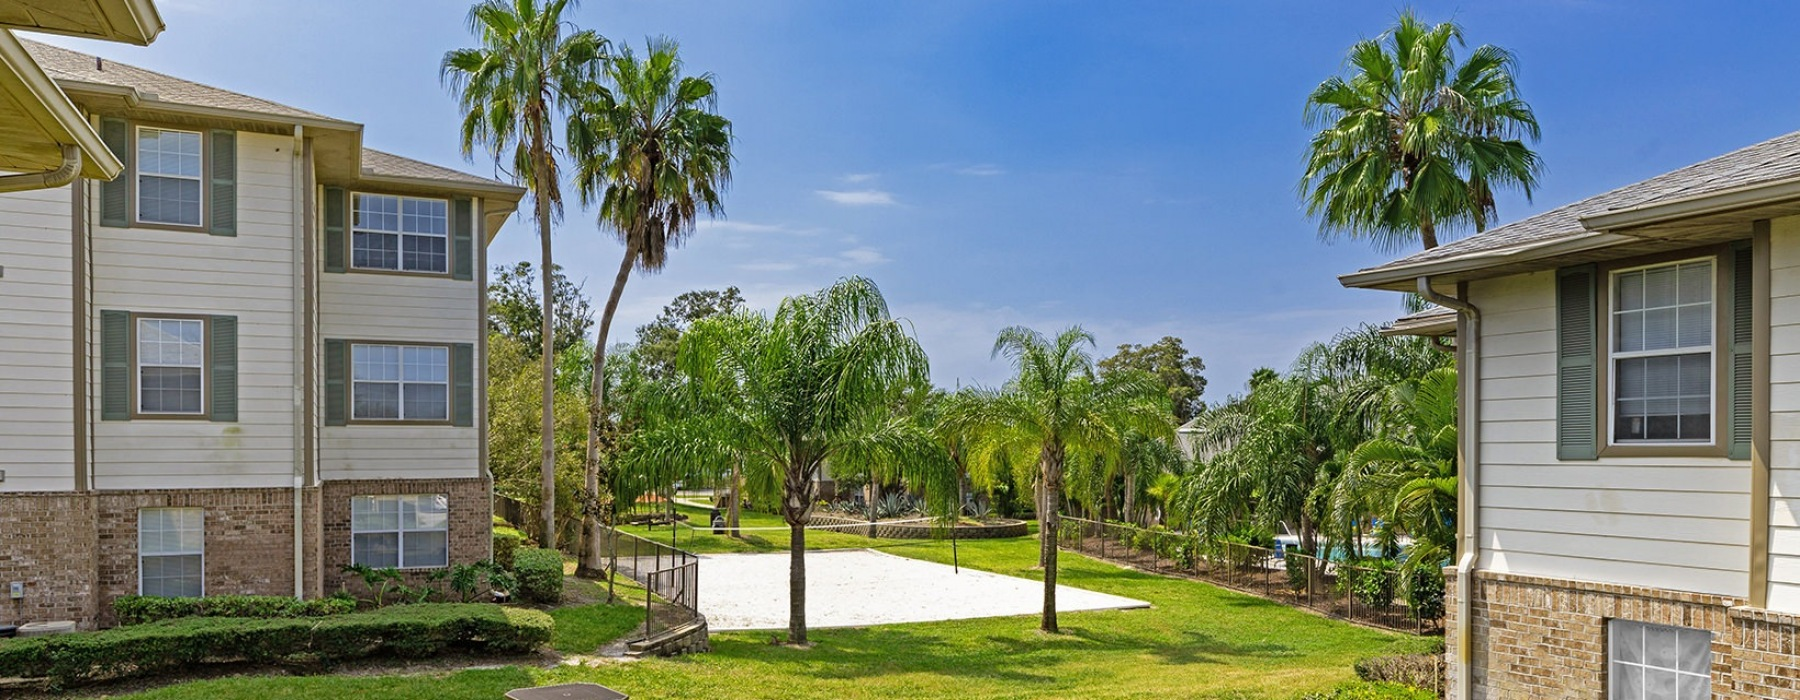 Tropically landscaped grounds with picnic areas and volleyball